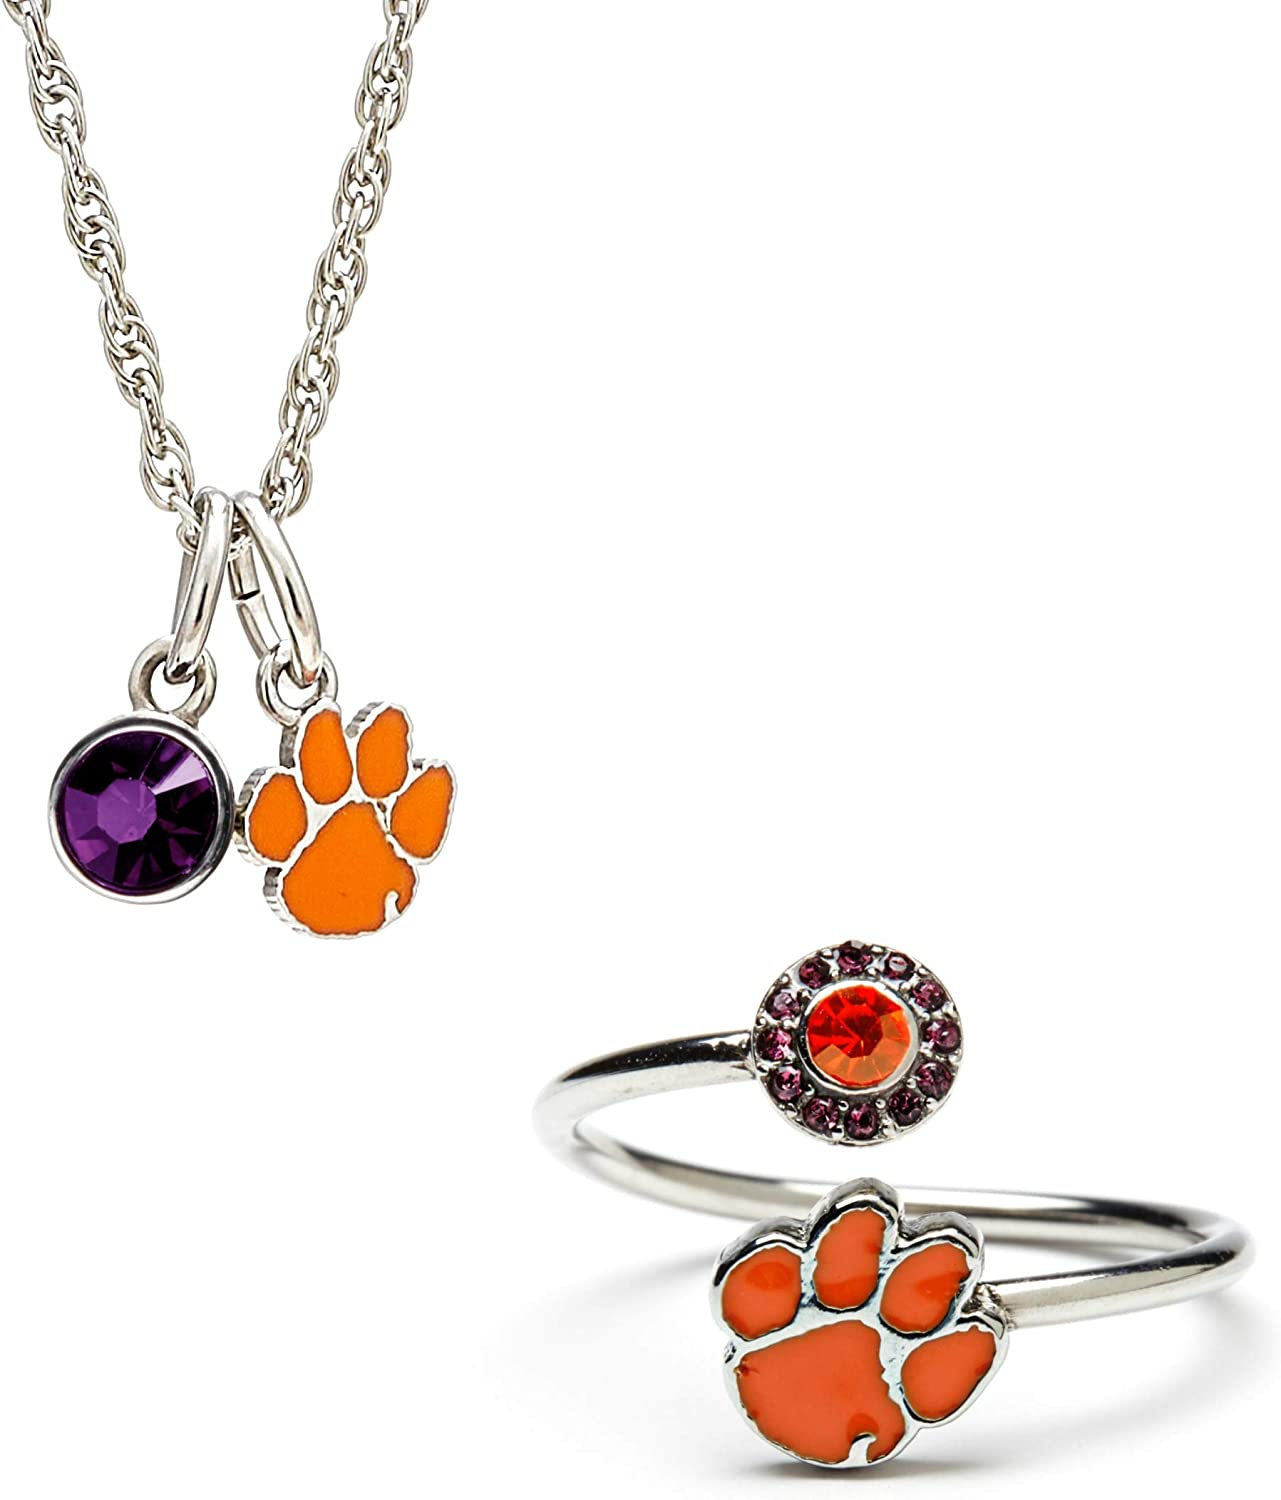 Stone Armory | Gift Set-Love Clemson Ring and Necklace | Clemson University Ring | Clemson University Necklace | Officially Licensed Clemson University Jewelry | Clemson Gift